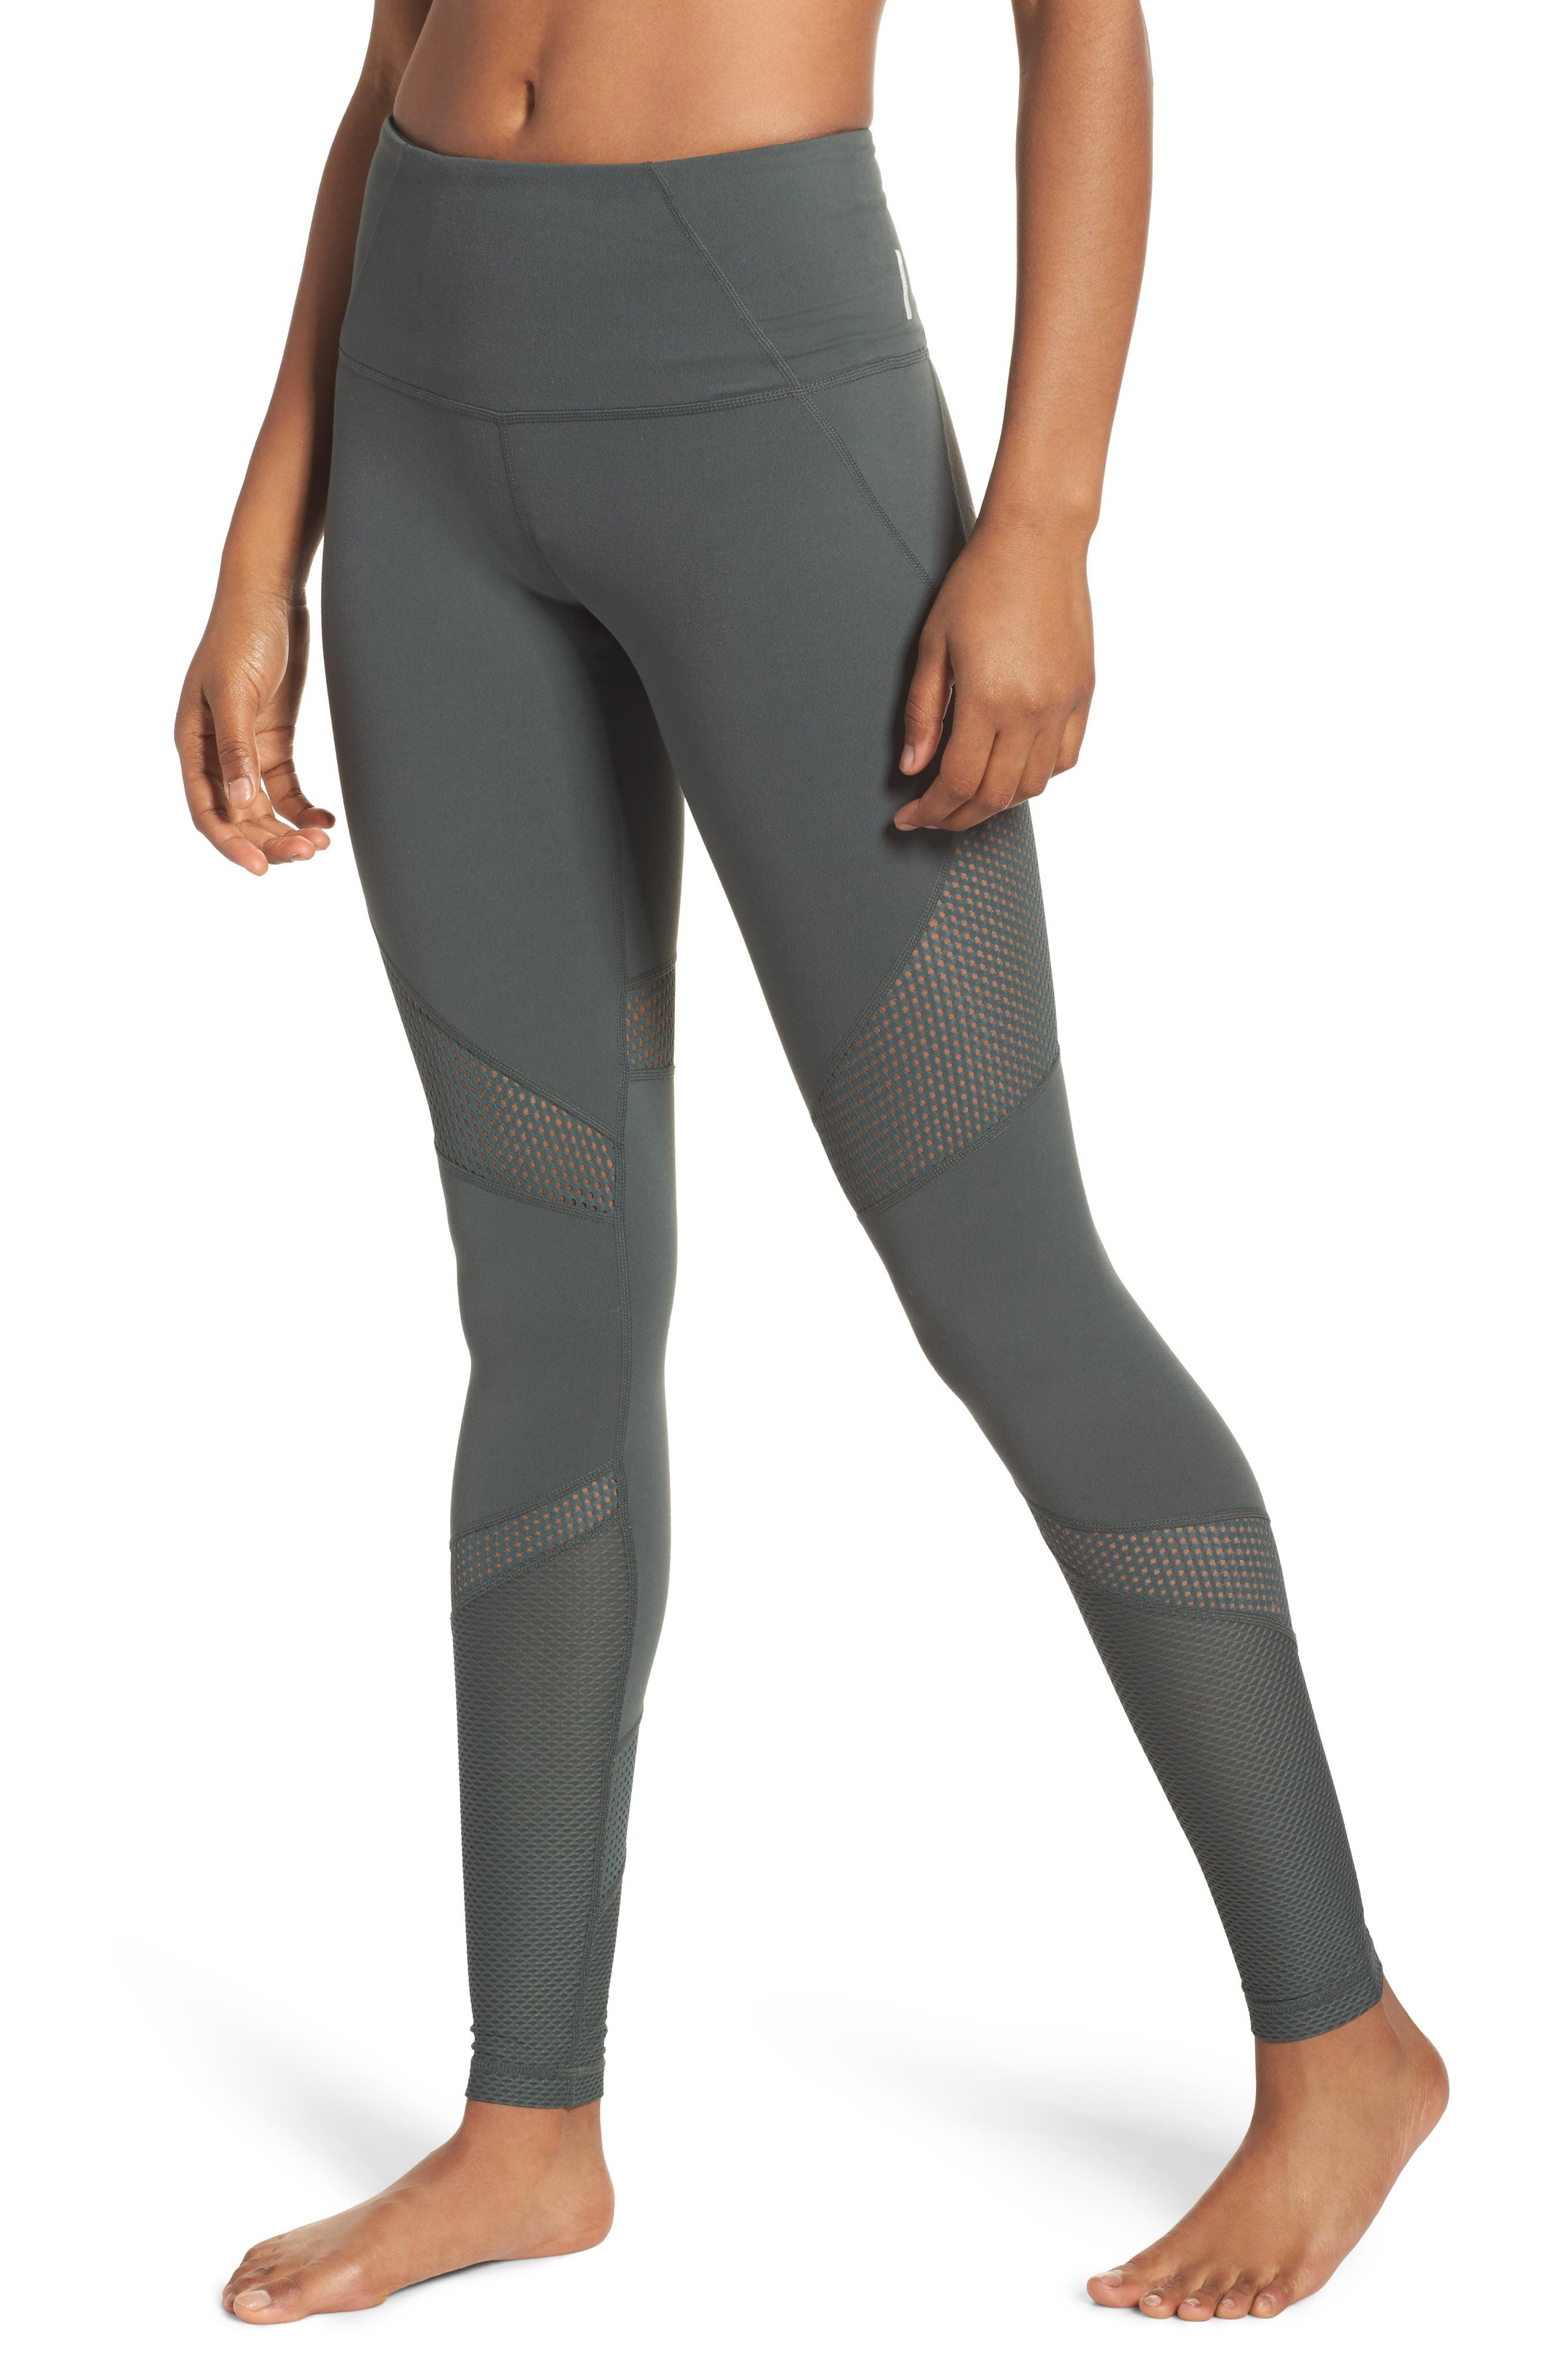 Out of Bounds High Waist Leggings,                         Main,                         color, Grey Urban